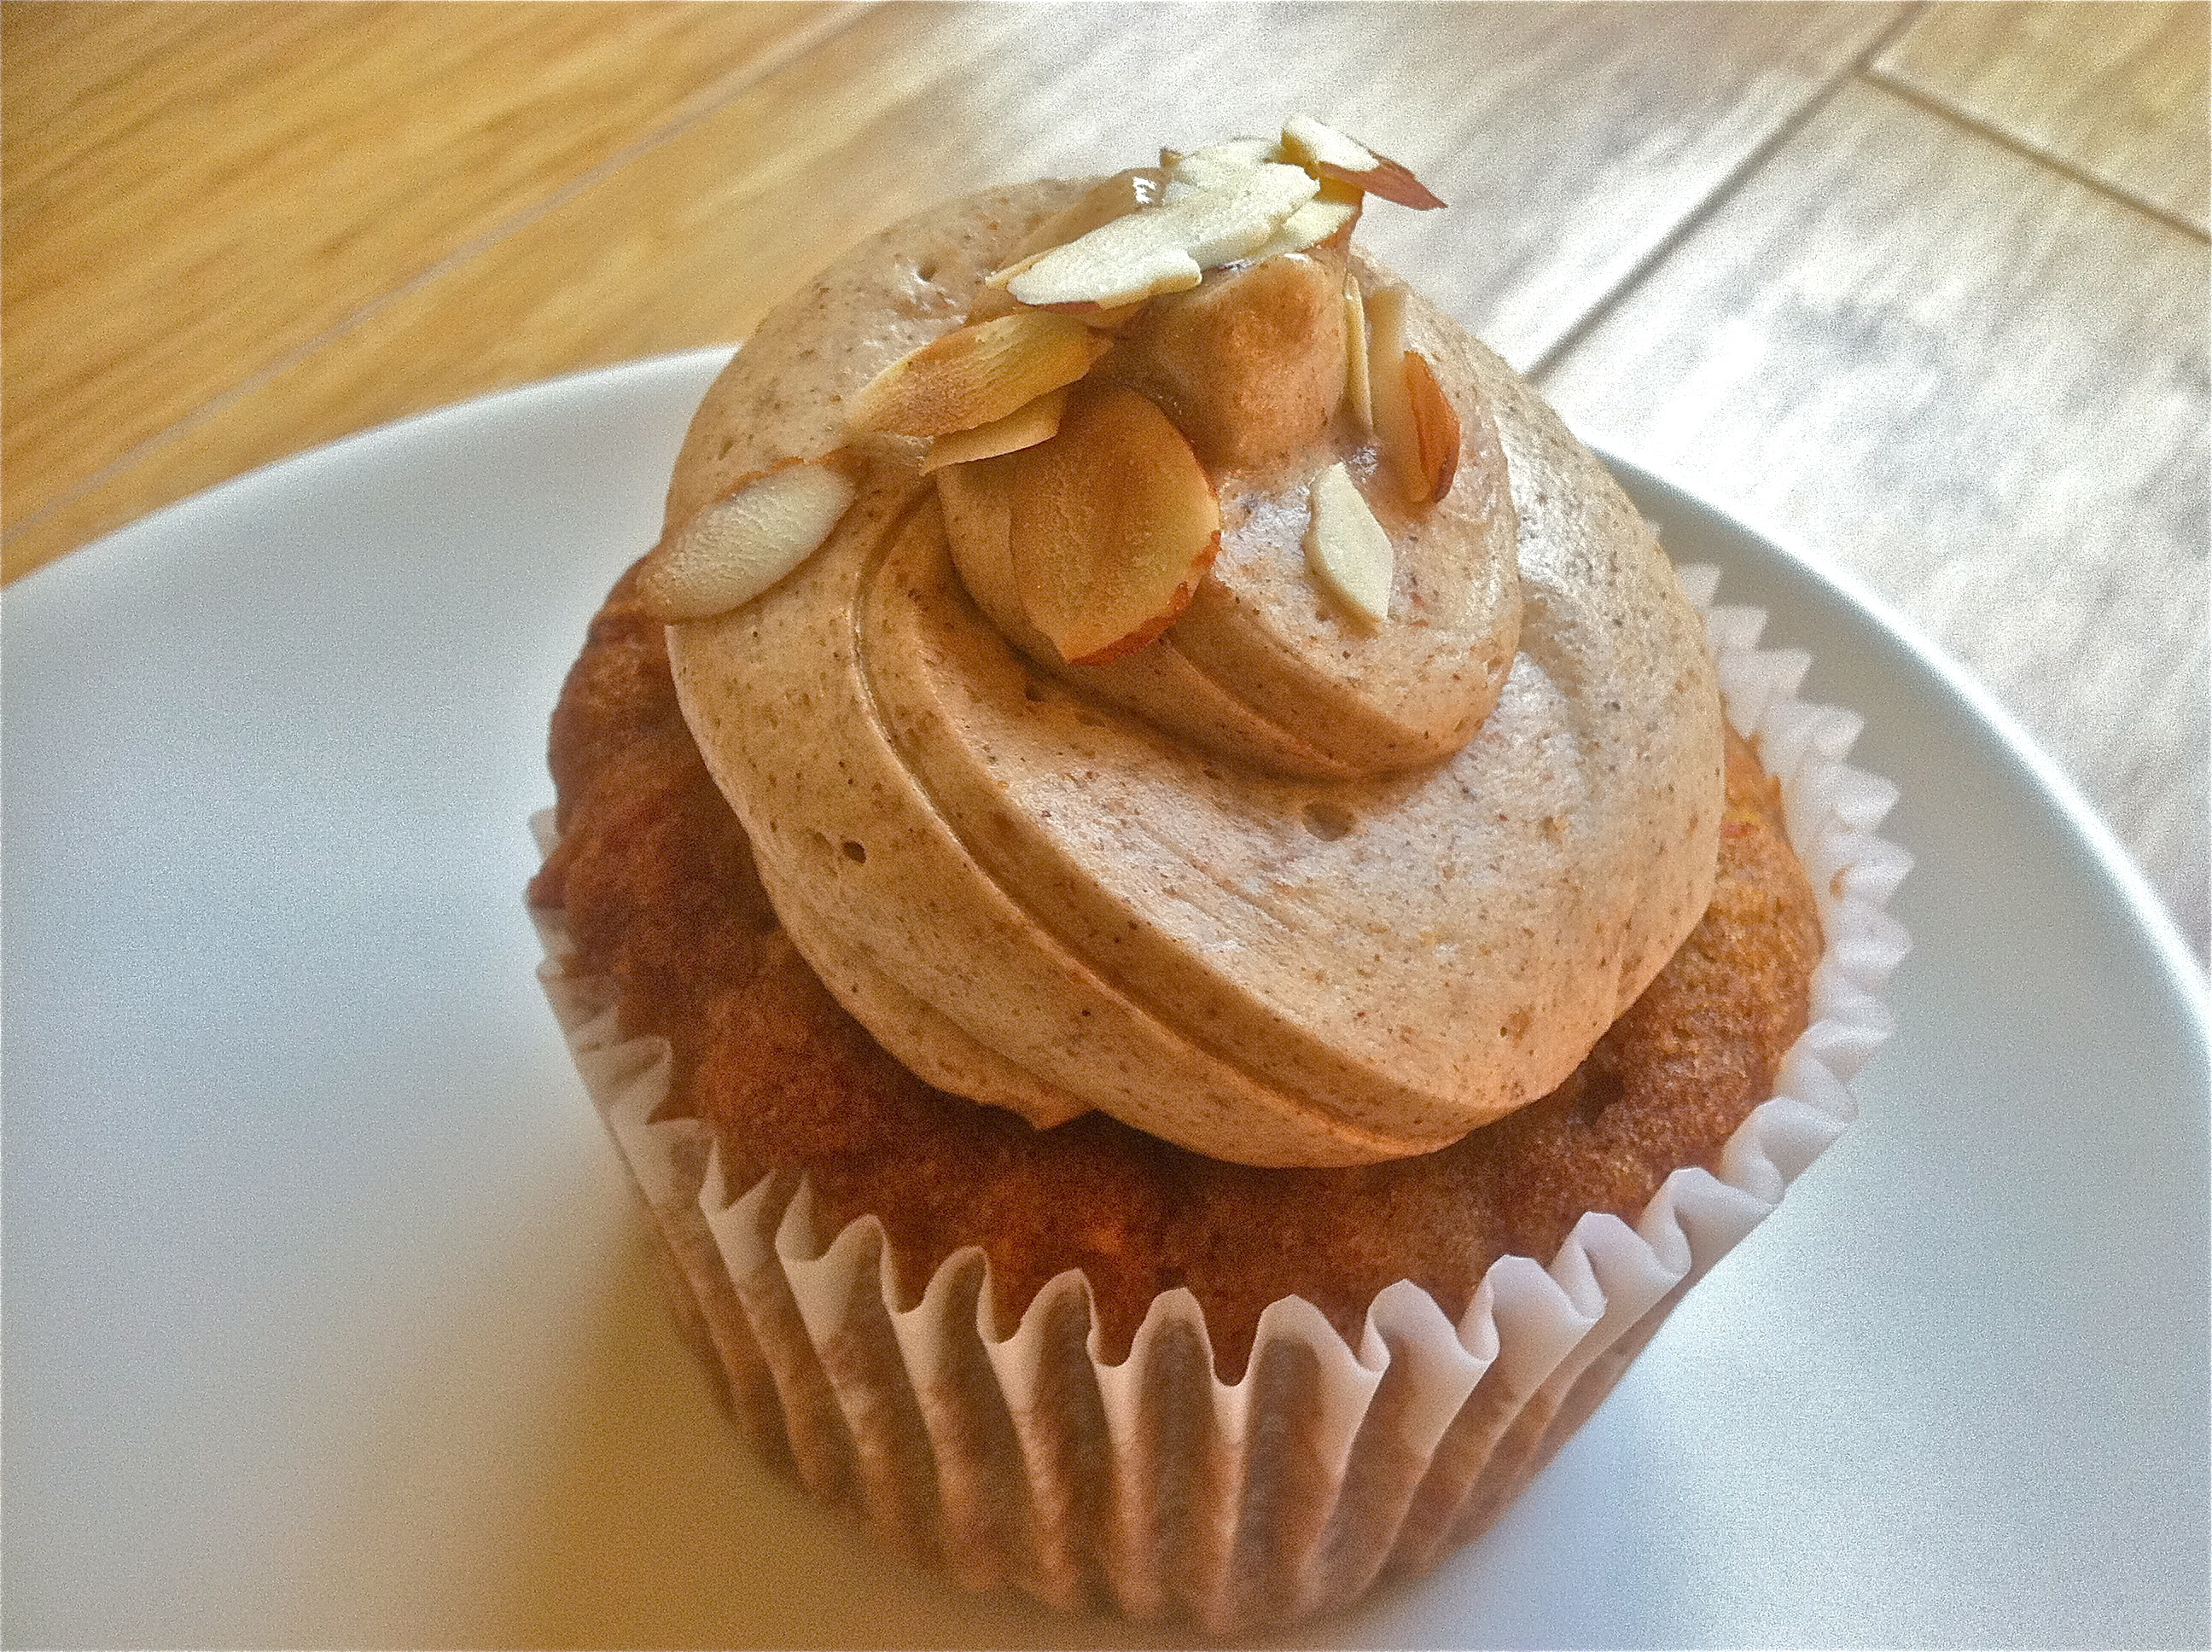 Muffin Mondays | Carrot Muffins with Graham Frosting | Let Me Eat Cake